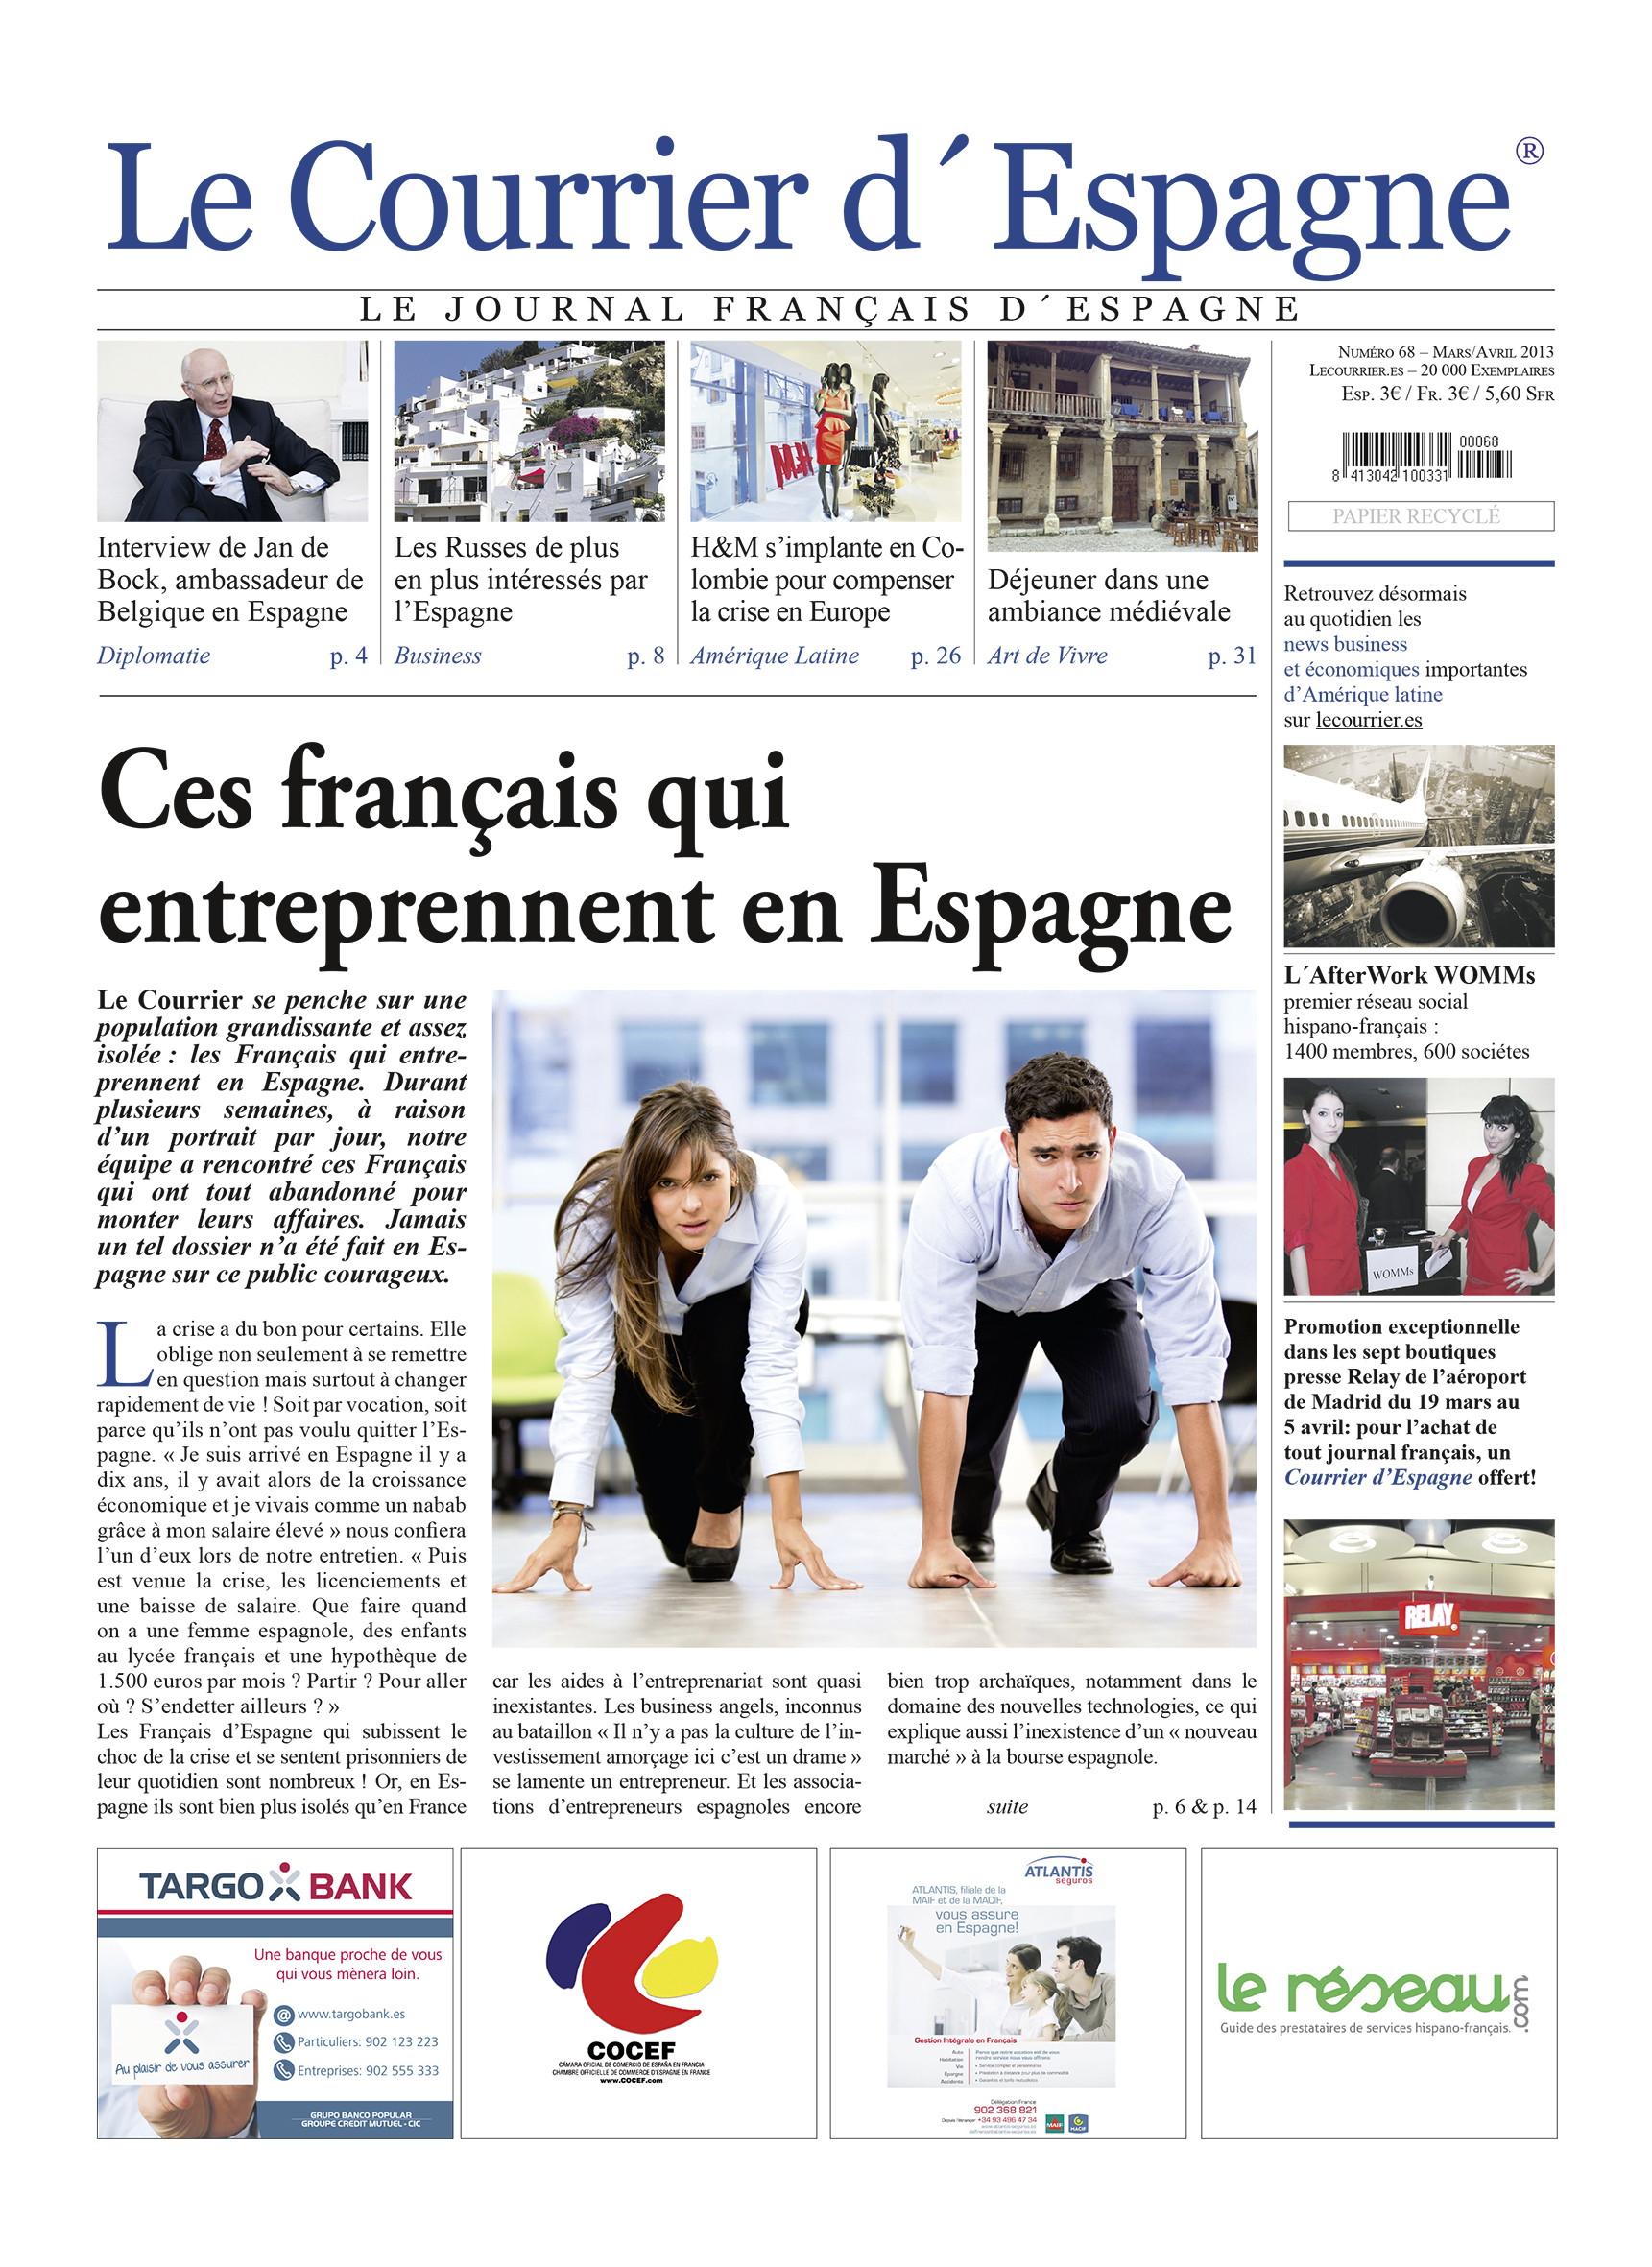 Courrier dEspagne 68 - 20 march-1